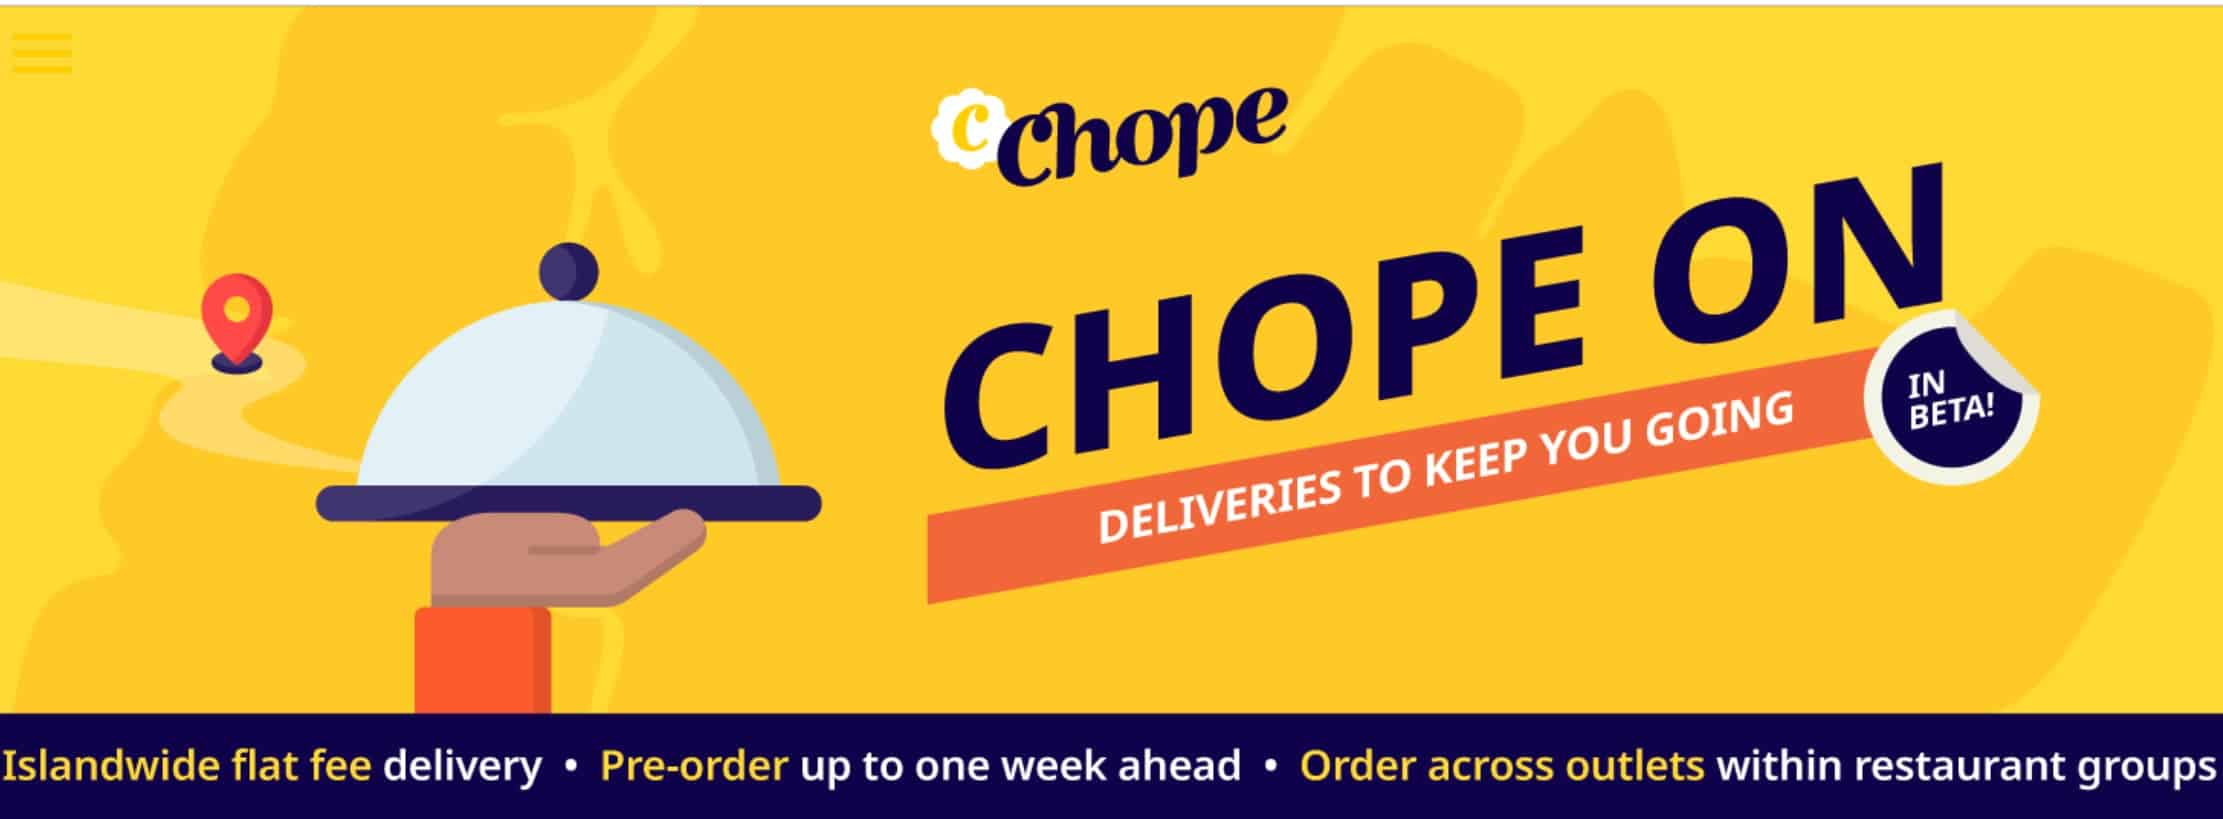 CHOPE Islandwide Delivery free delivery